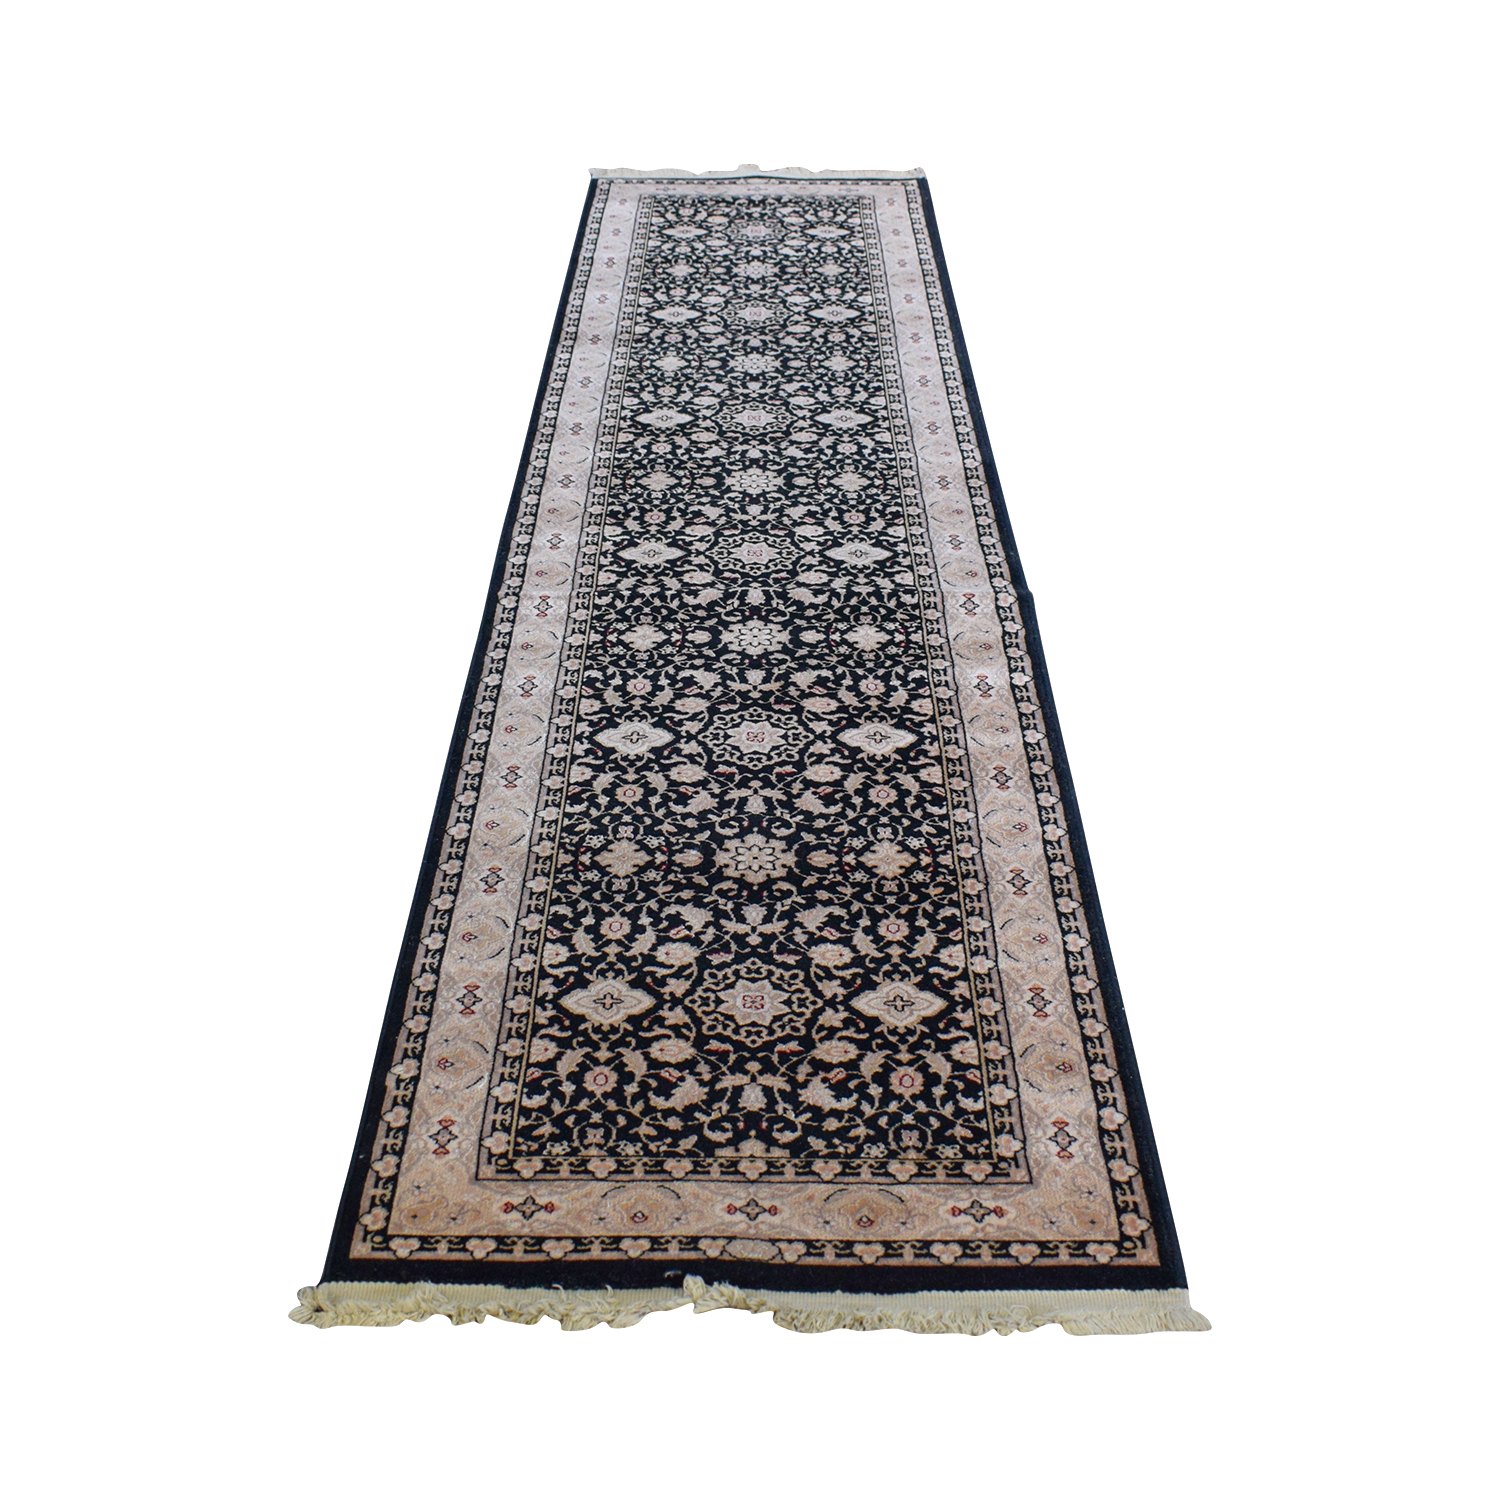 Karastan Persian Black Multi-Colored Runner / Decor